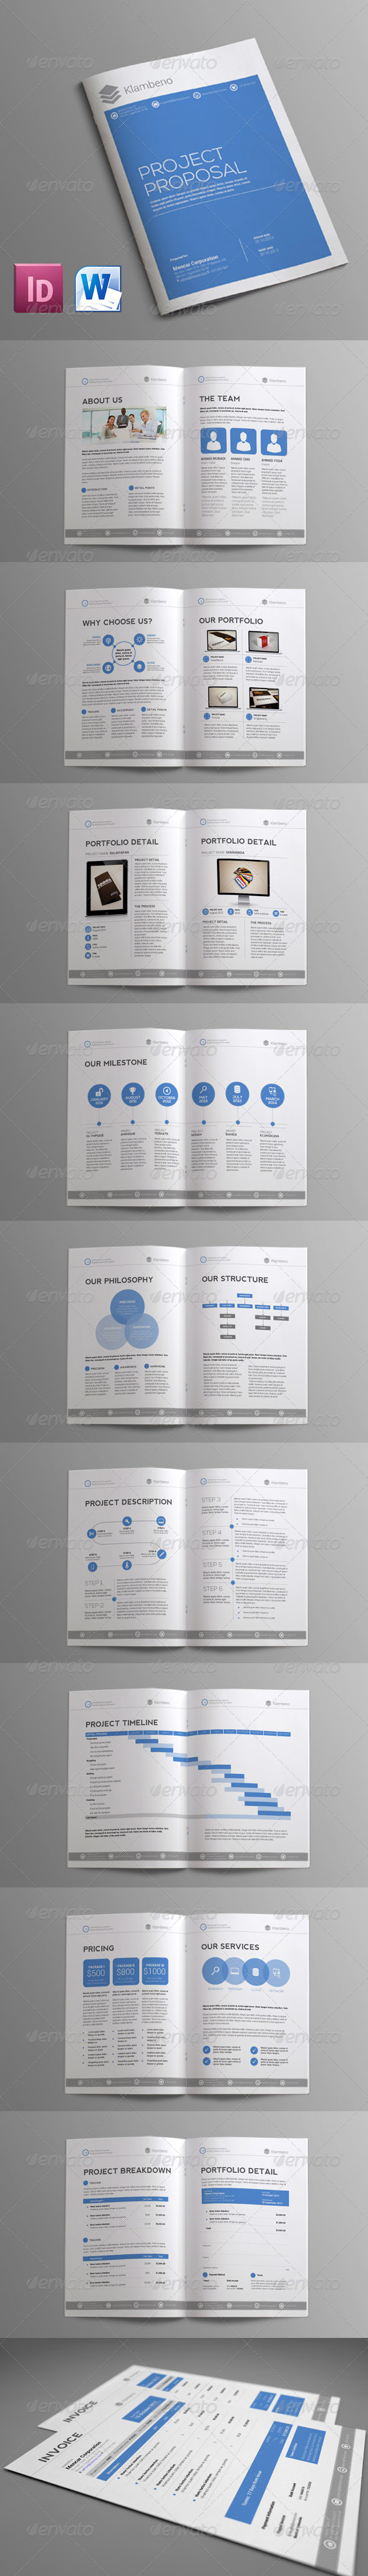 GraphicRiver Sleman Clean Proposal Template Volume 6 6155683